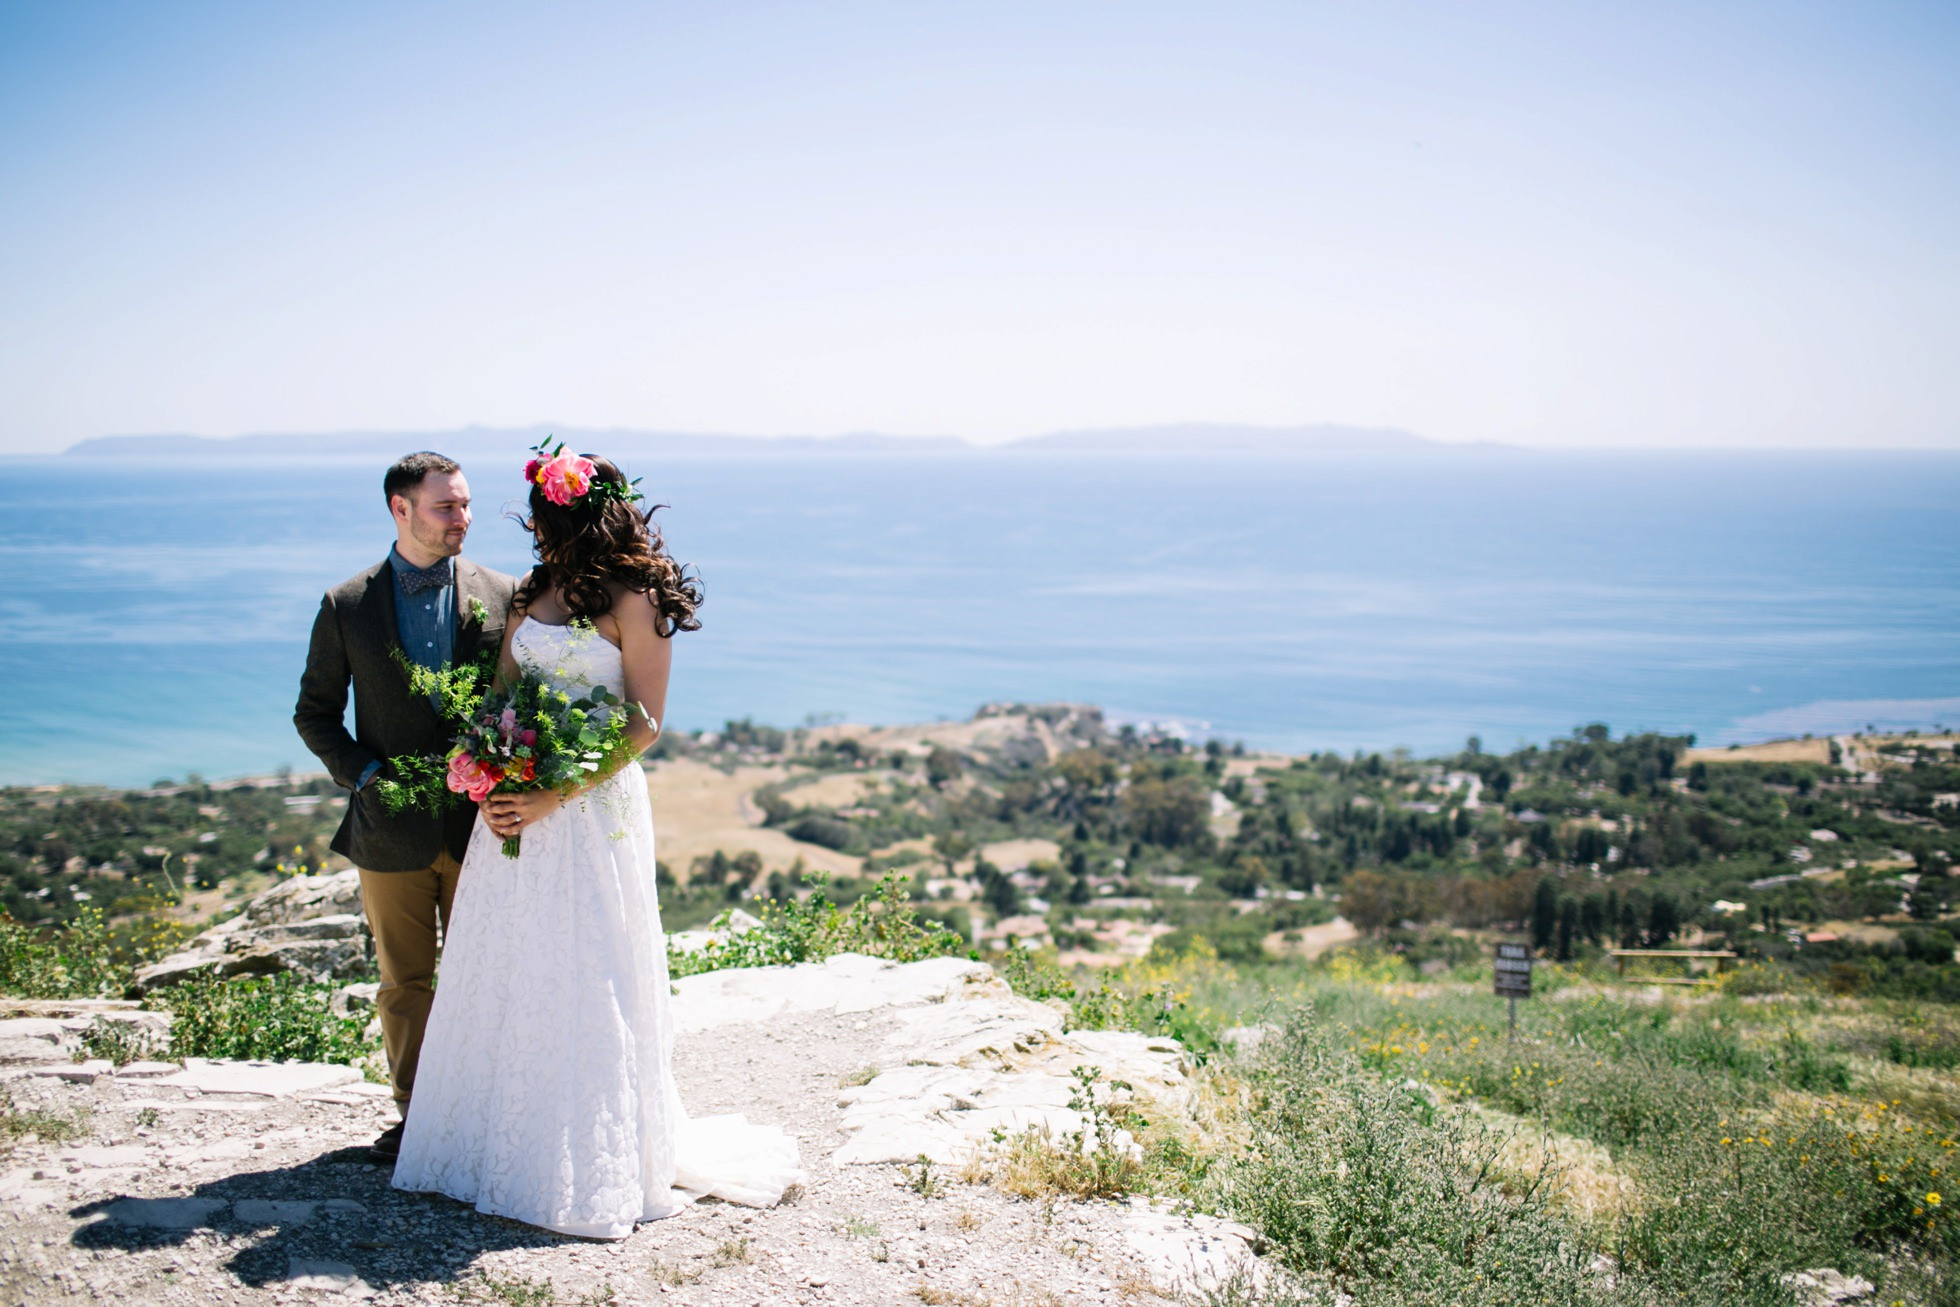 Palos Verdes Southern California Destination Wedding | brittneyraine.com 0027